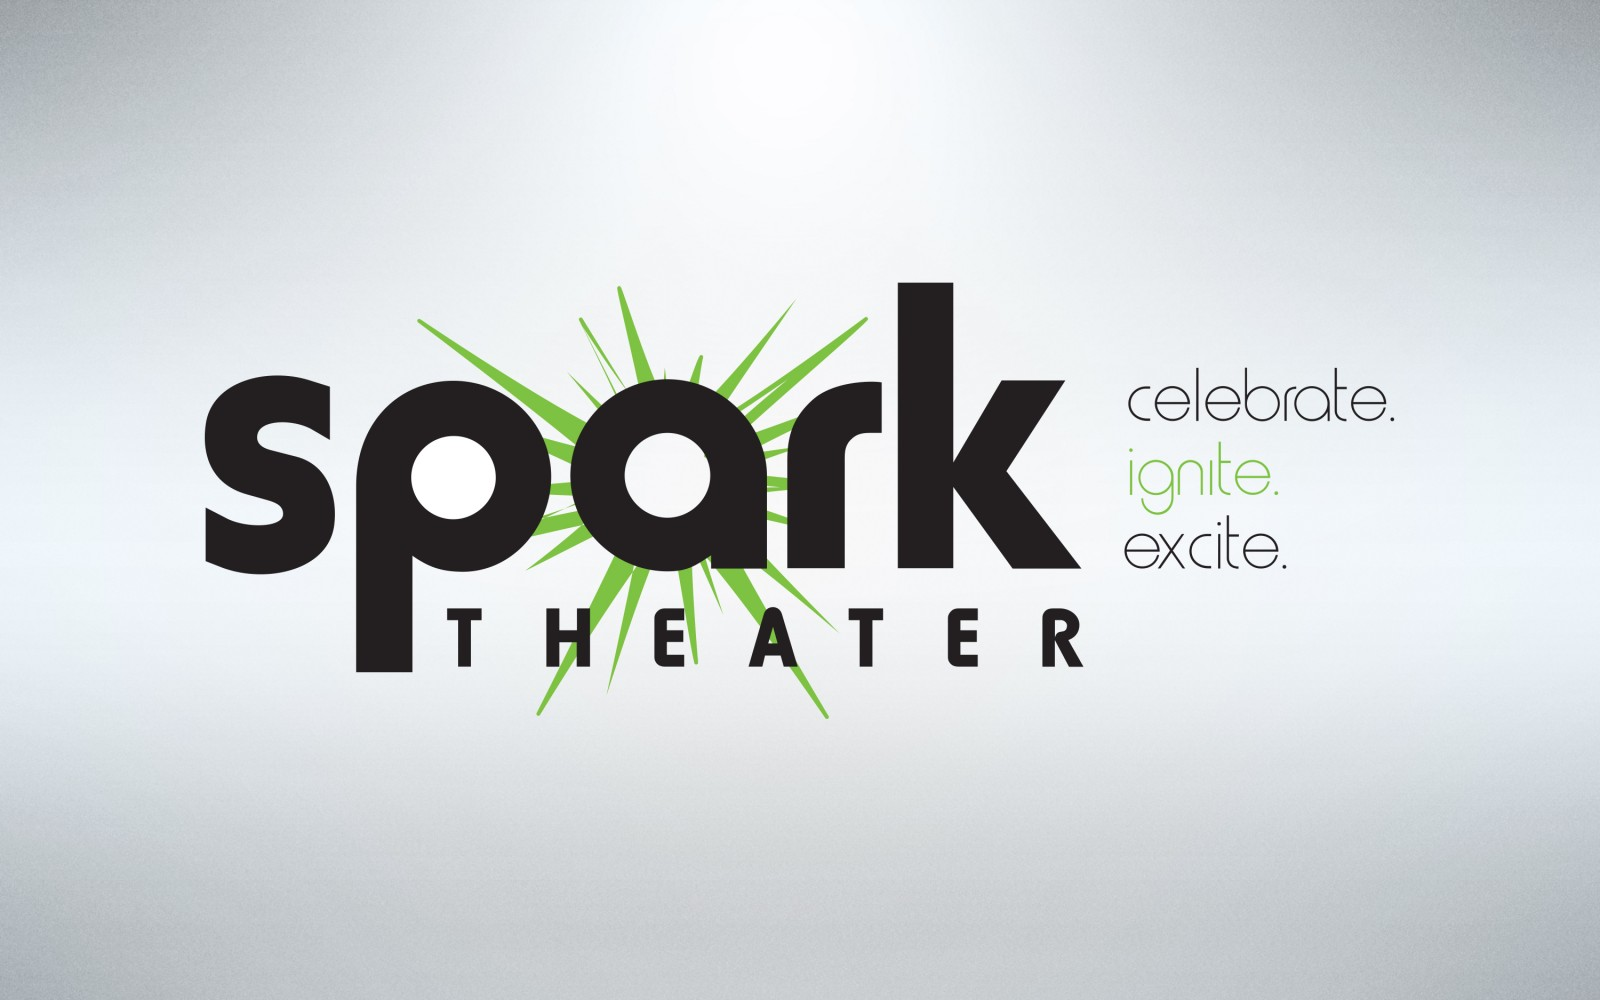 Spark Theater